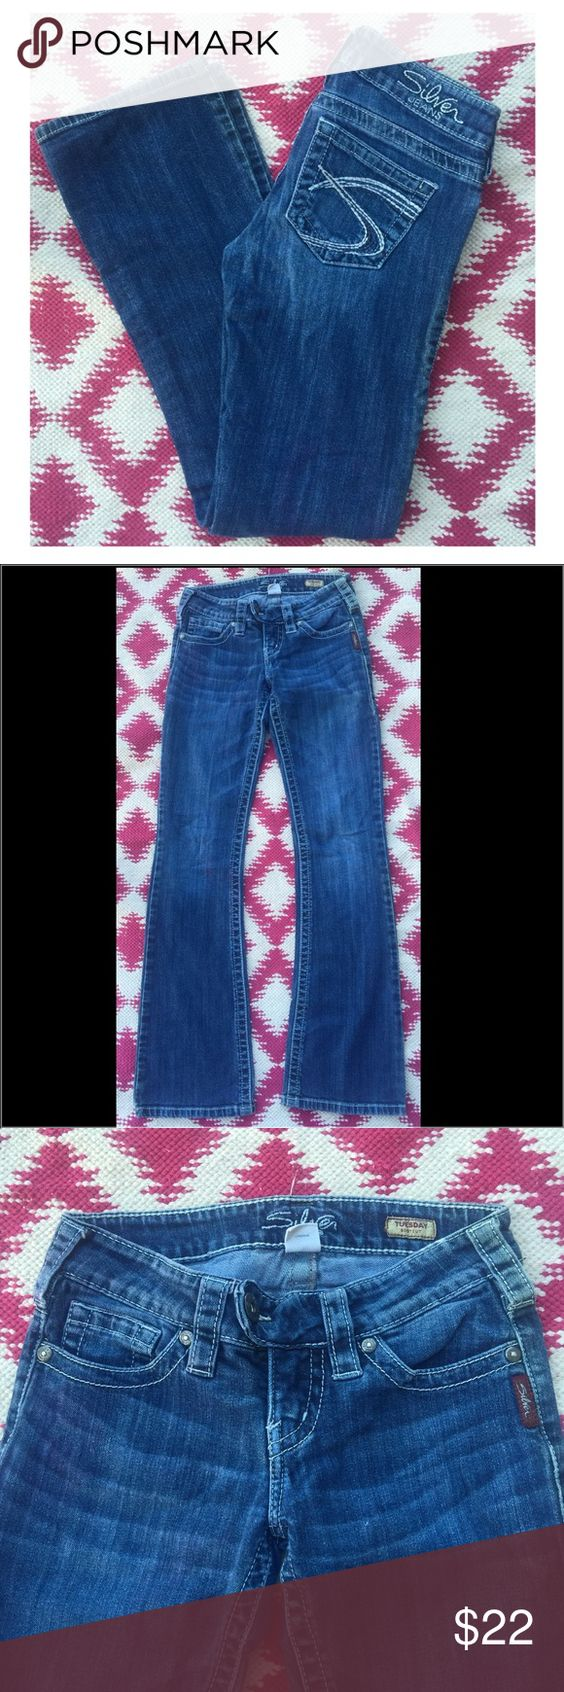 "Silver Tuesday boot cut jeans Good pre owned condition. 29"" inseam. 7"" rise Silver Jeans Jeans Boot Cut"